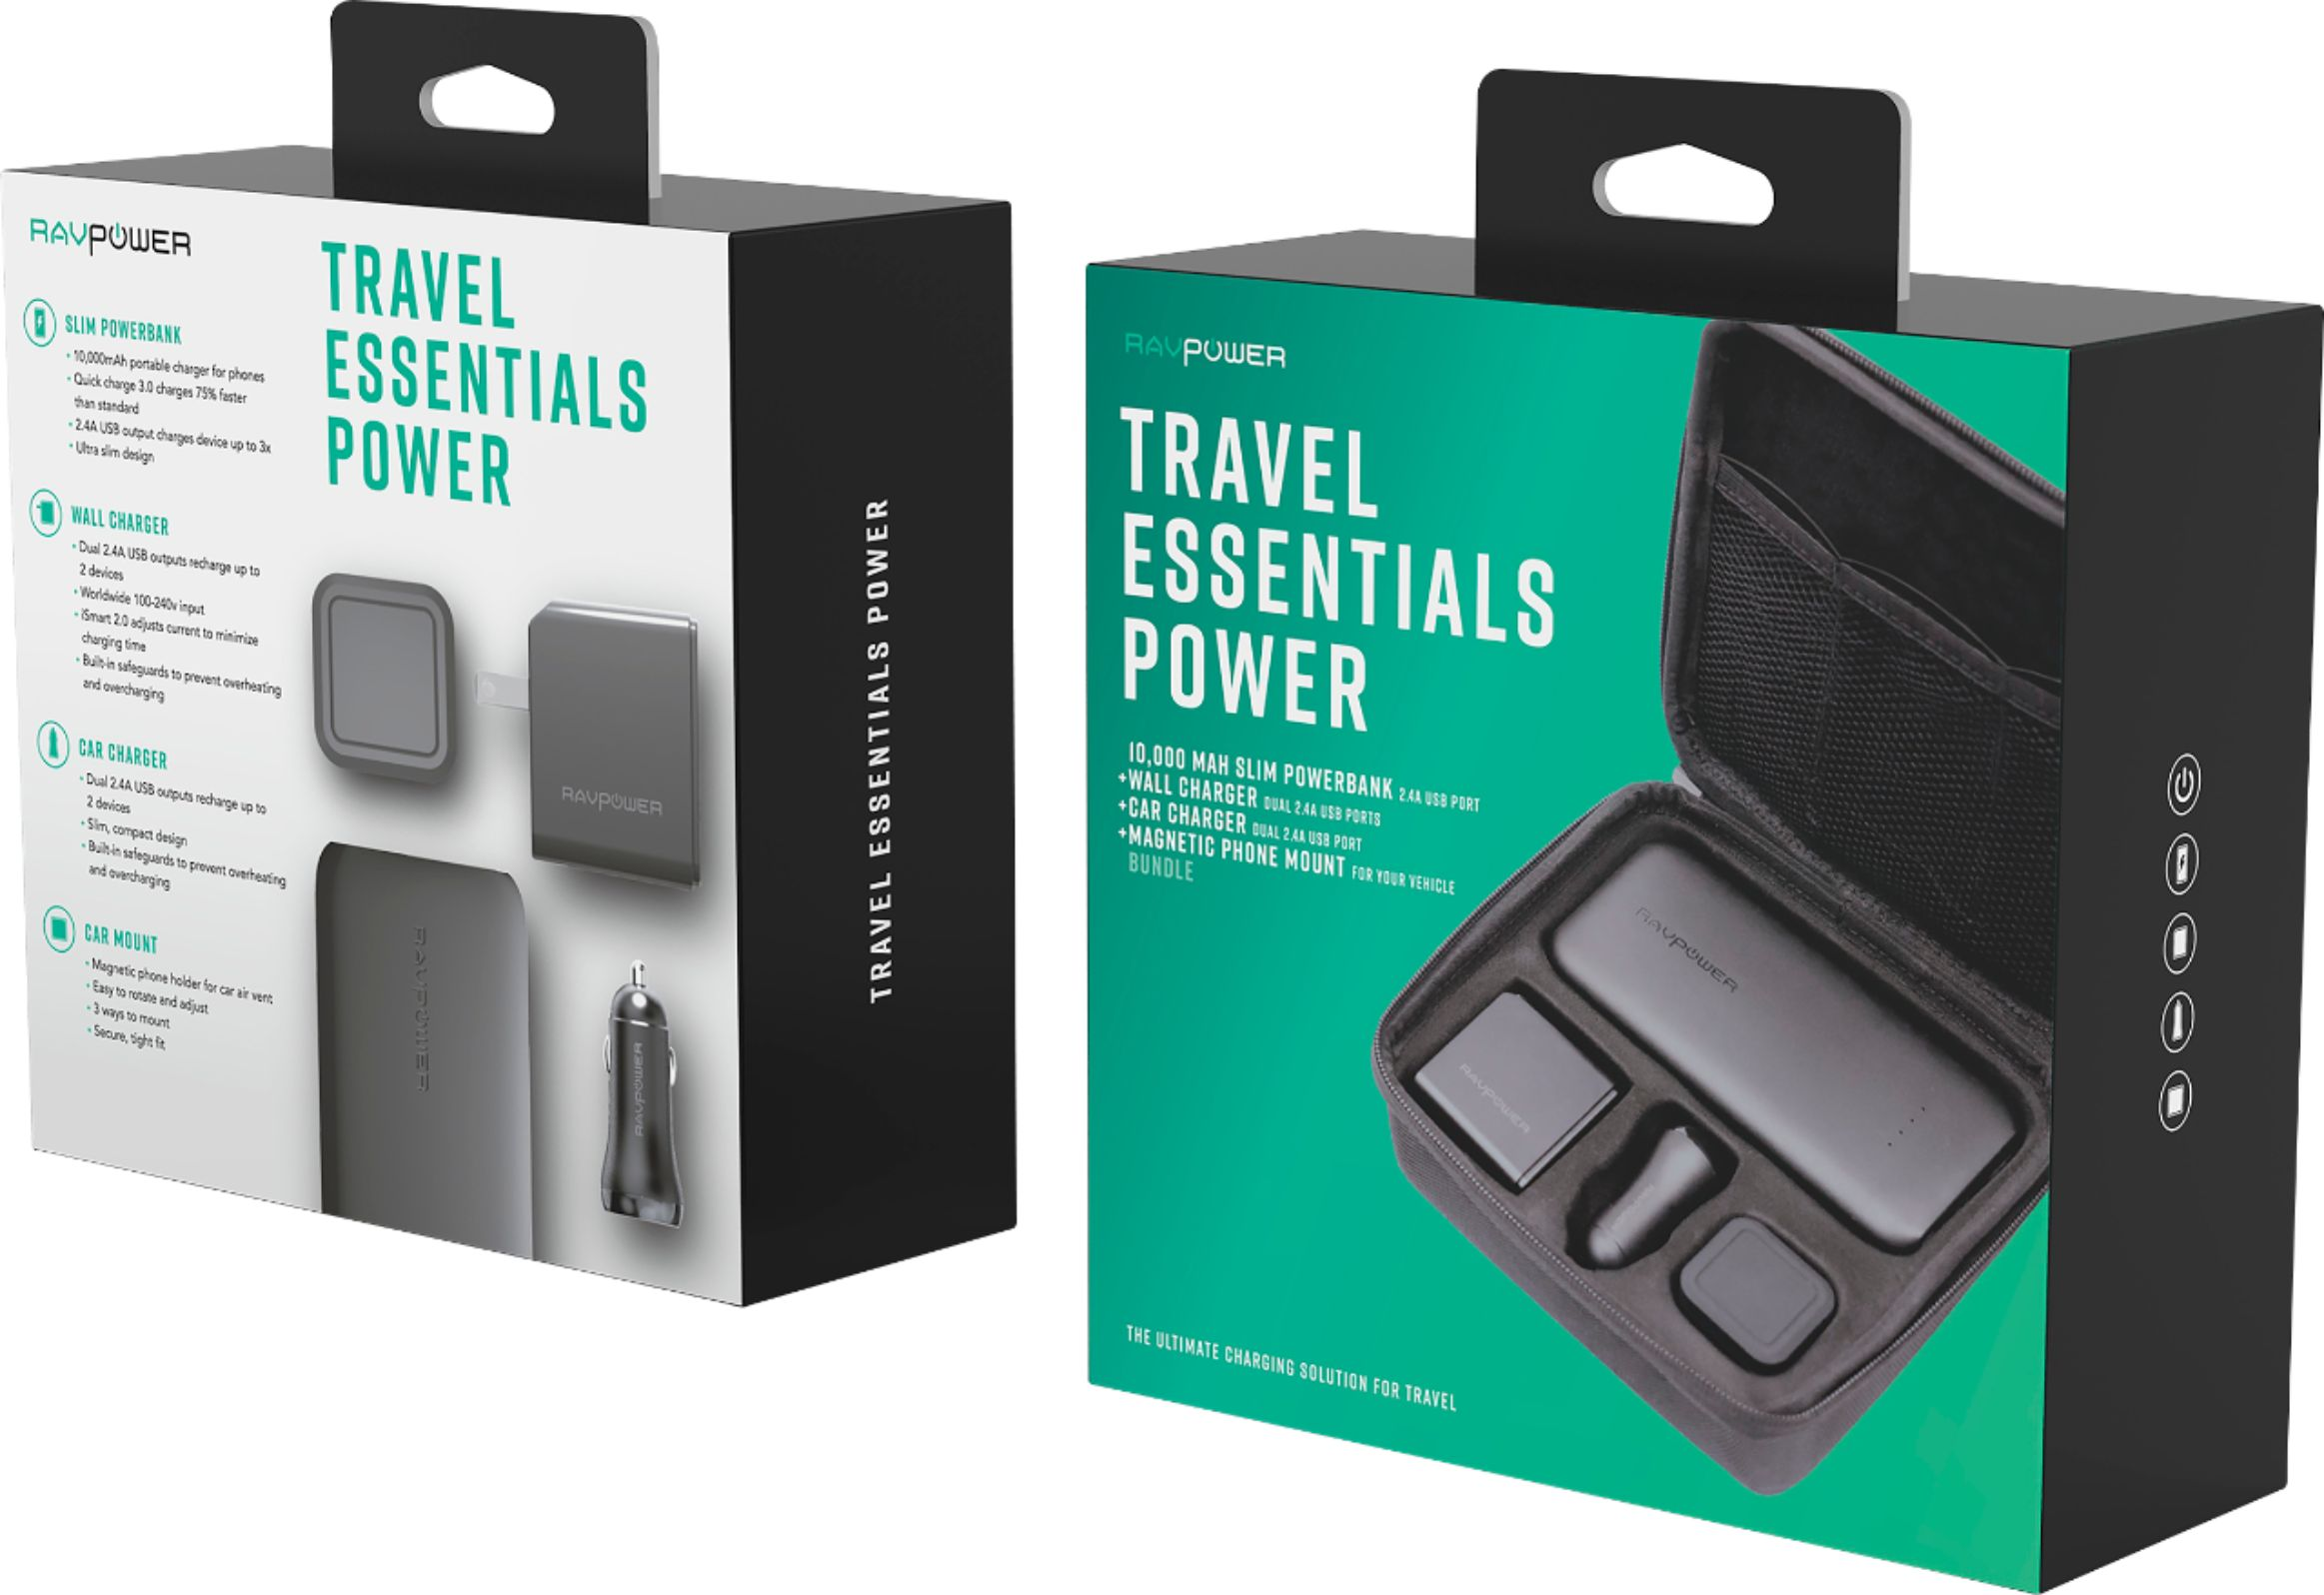 RAV Power - All-in-One Portable Mobile Power Kit - You get ALL OF THIS: 10,000 mah ULTRA High Capacity Dual Port Portable Power Bank for your phone or any USB powered device (enough power to charge your Apple or Android phone over and over again - Can charge 2 at one time), Dual Port High Speed AC Power Adapter, Dual Port High Speed DC Power Adapter (for your car), Magnetic Cell Phone Car Mount and a Storage / Travel Case - $50 at Best Buy, just $24.99 from us! - Oh, know anyone with a phone? This makes a great nicely packaged gift :) - SHIPS FREE!